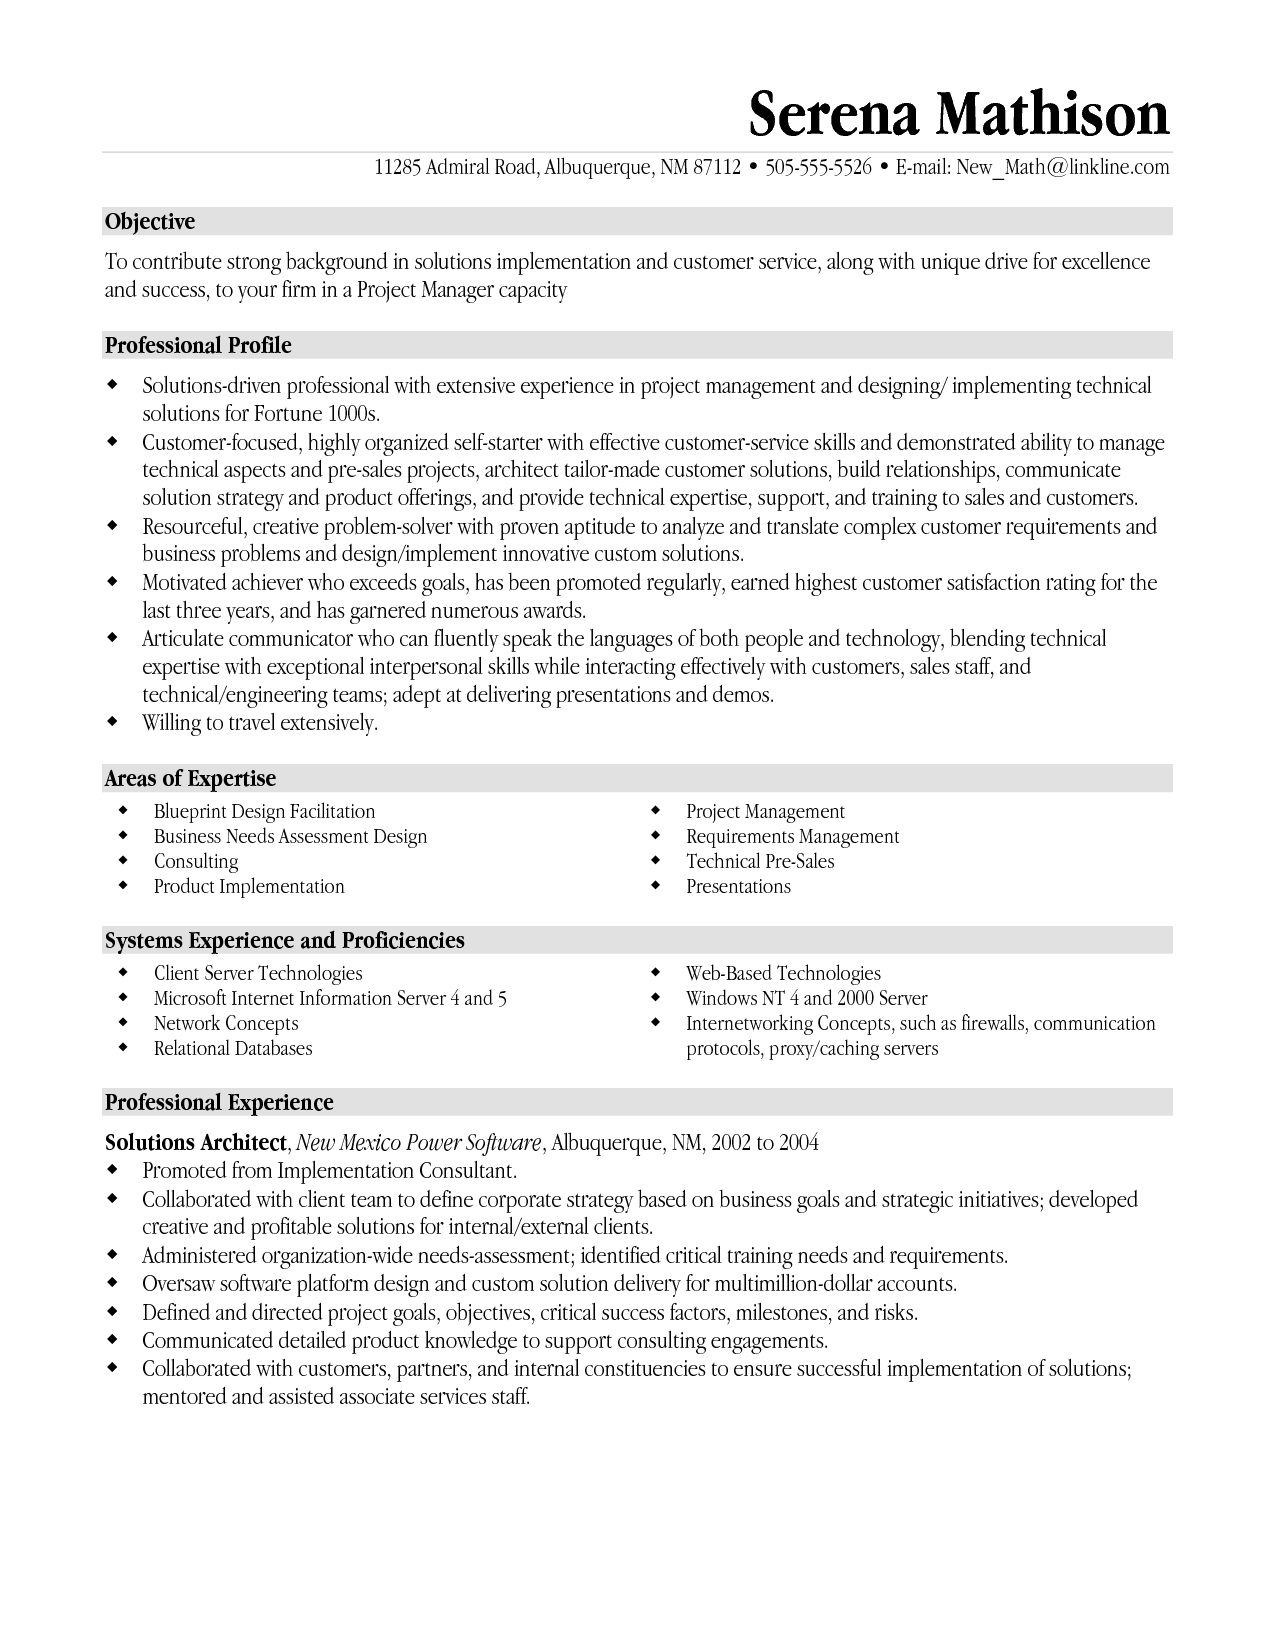 Management Resume Examples Adorable Resume Templates Project Manager  Project Management Resume